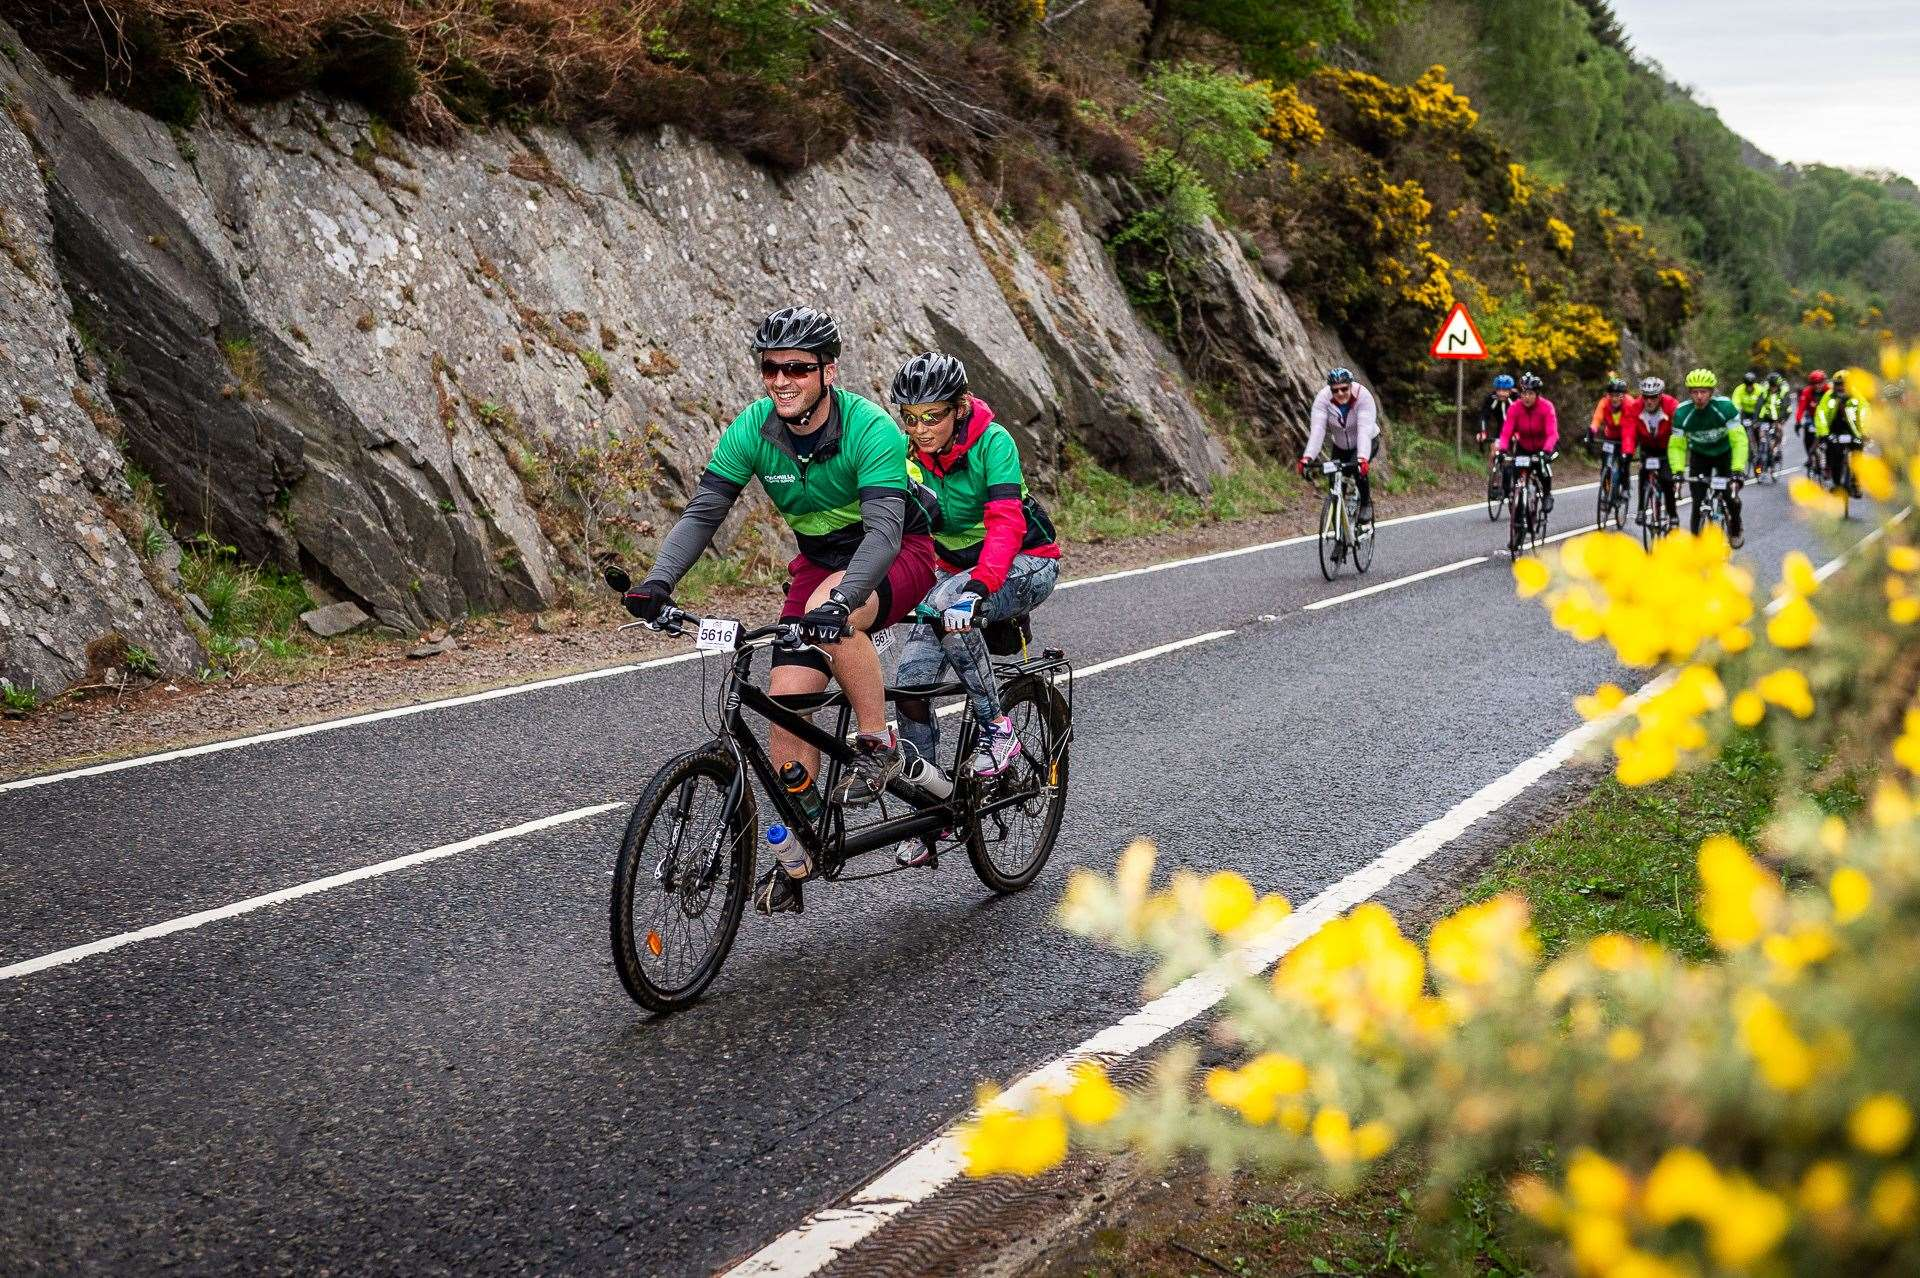 A pair of Macmillan Cancer Support cyclists riding a tandom bike as part of the Etape Loch Ness.